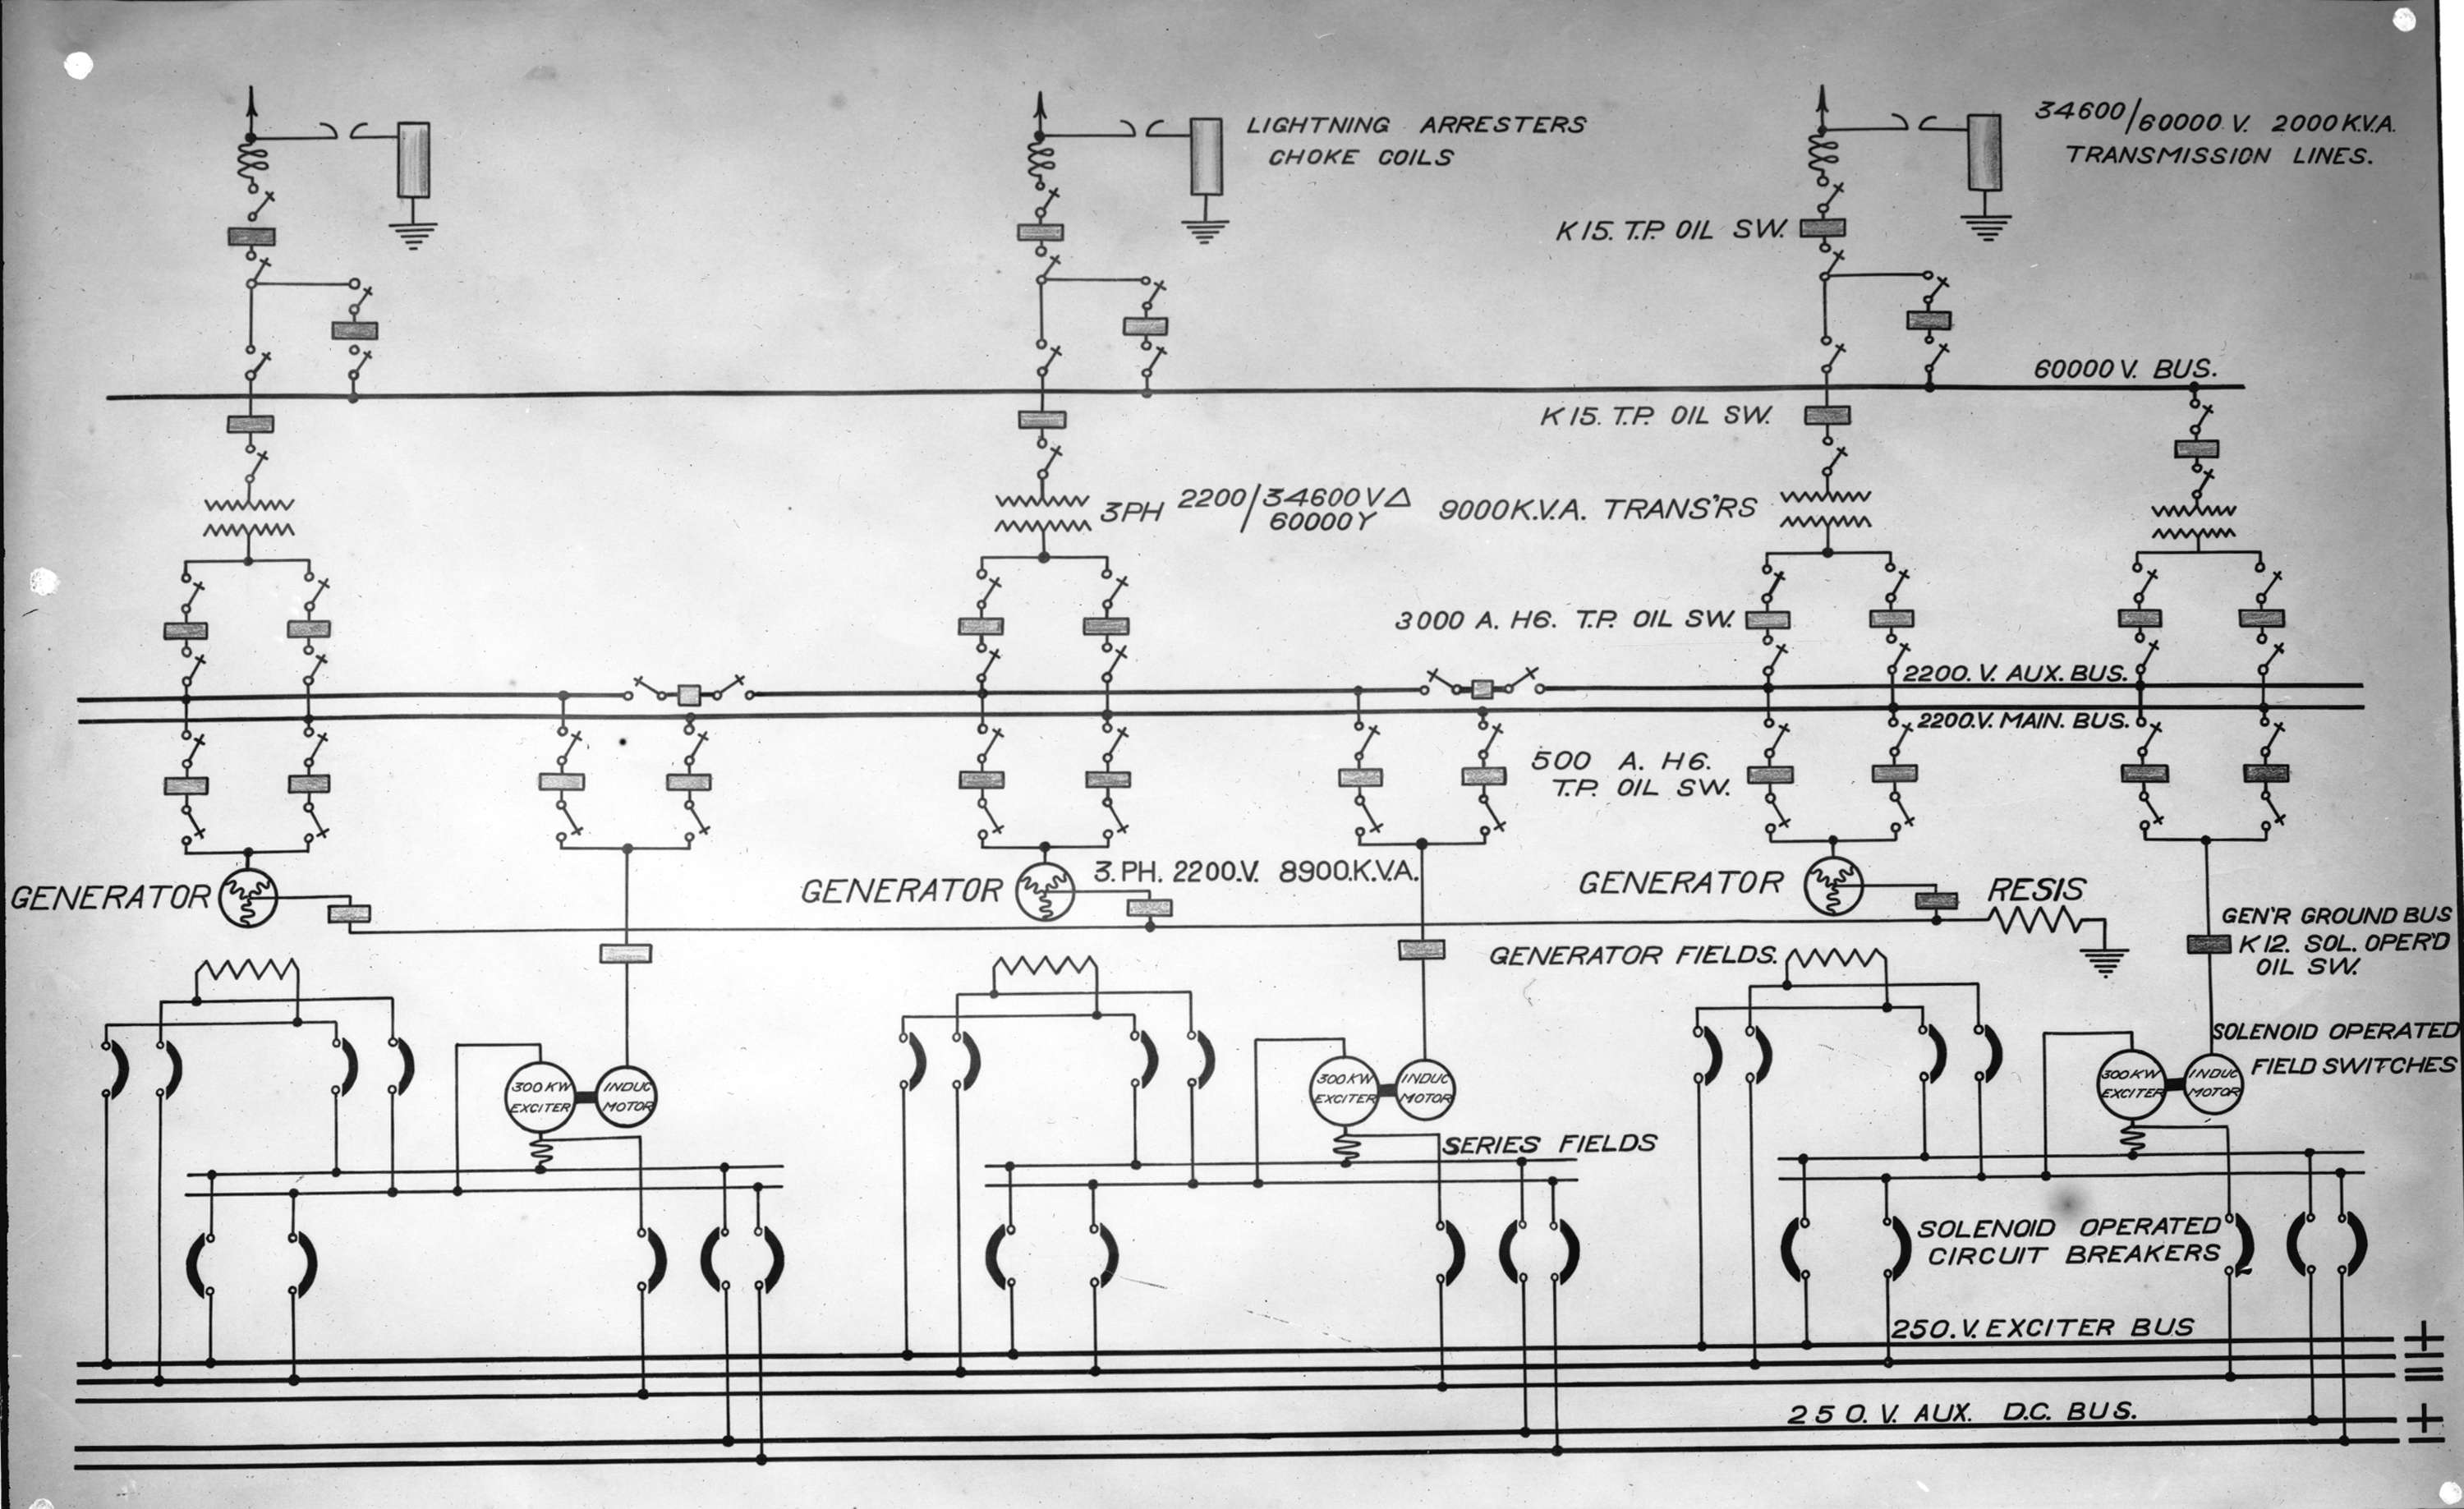 Diagram of electrical connections for Buntzen Lake Power Plant